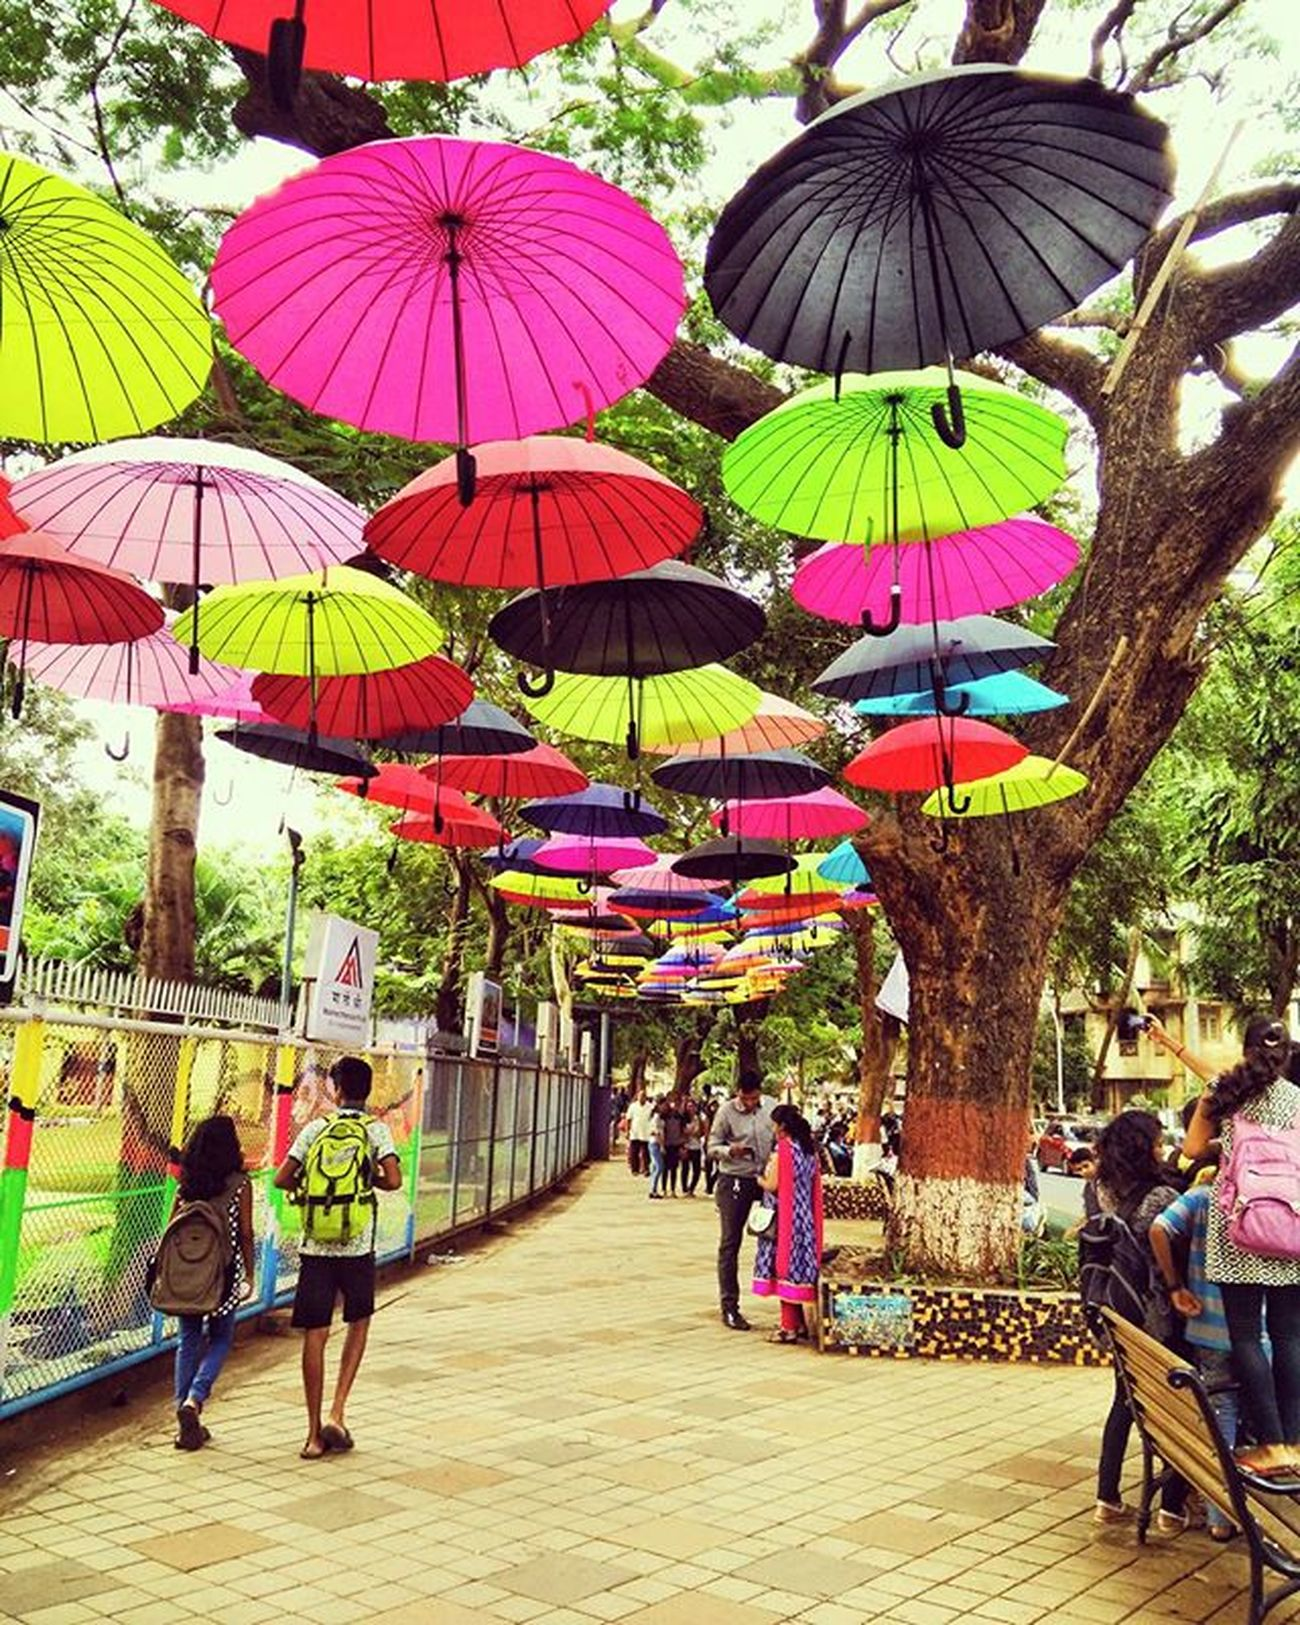 Kudos to such wonderful places in Aamchimumbai , where Magic happens 😍😍😘 SelfieLane Shivajipark YOLOhangouts Love TBT  Instagood Memories Follow Like4like Fun Instagramers InstaTags4Likes Instago Pretty Followme Nature LOL Sunset Instagold Photolocker Photo Cool Bestoftheday Clouds instagood statigram friends blue life instahub